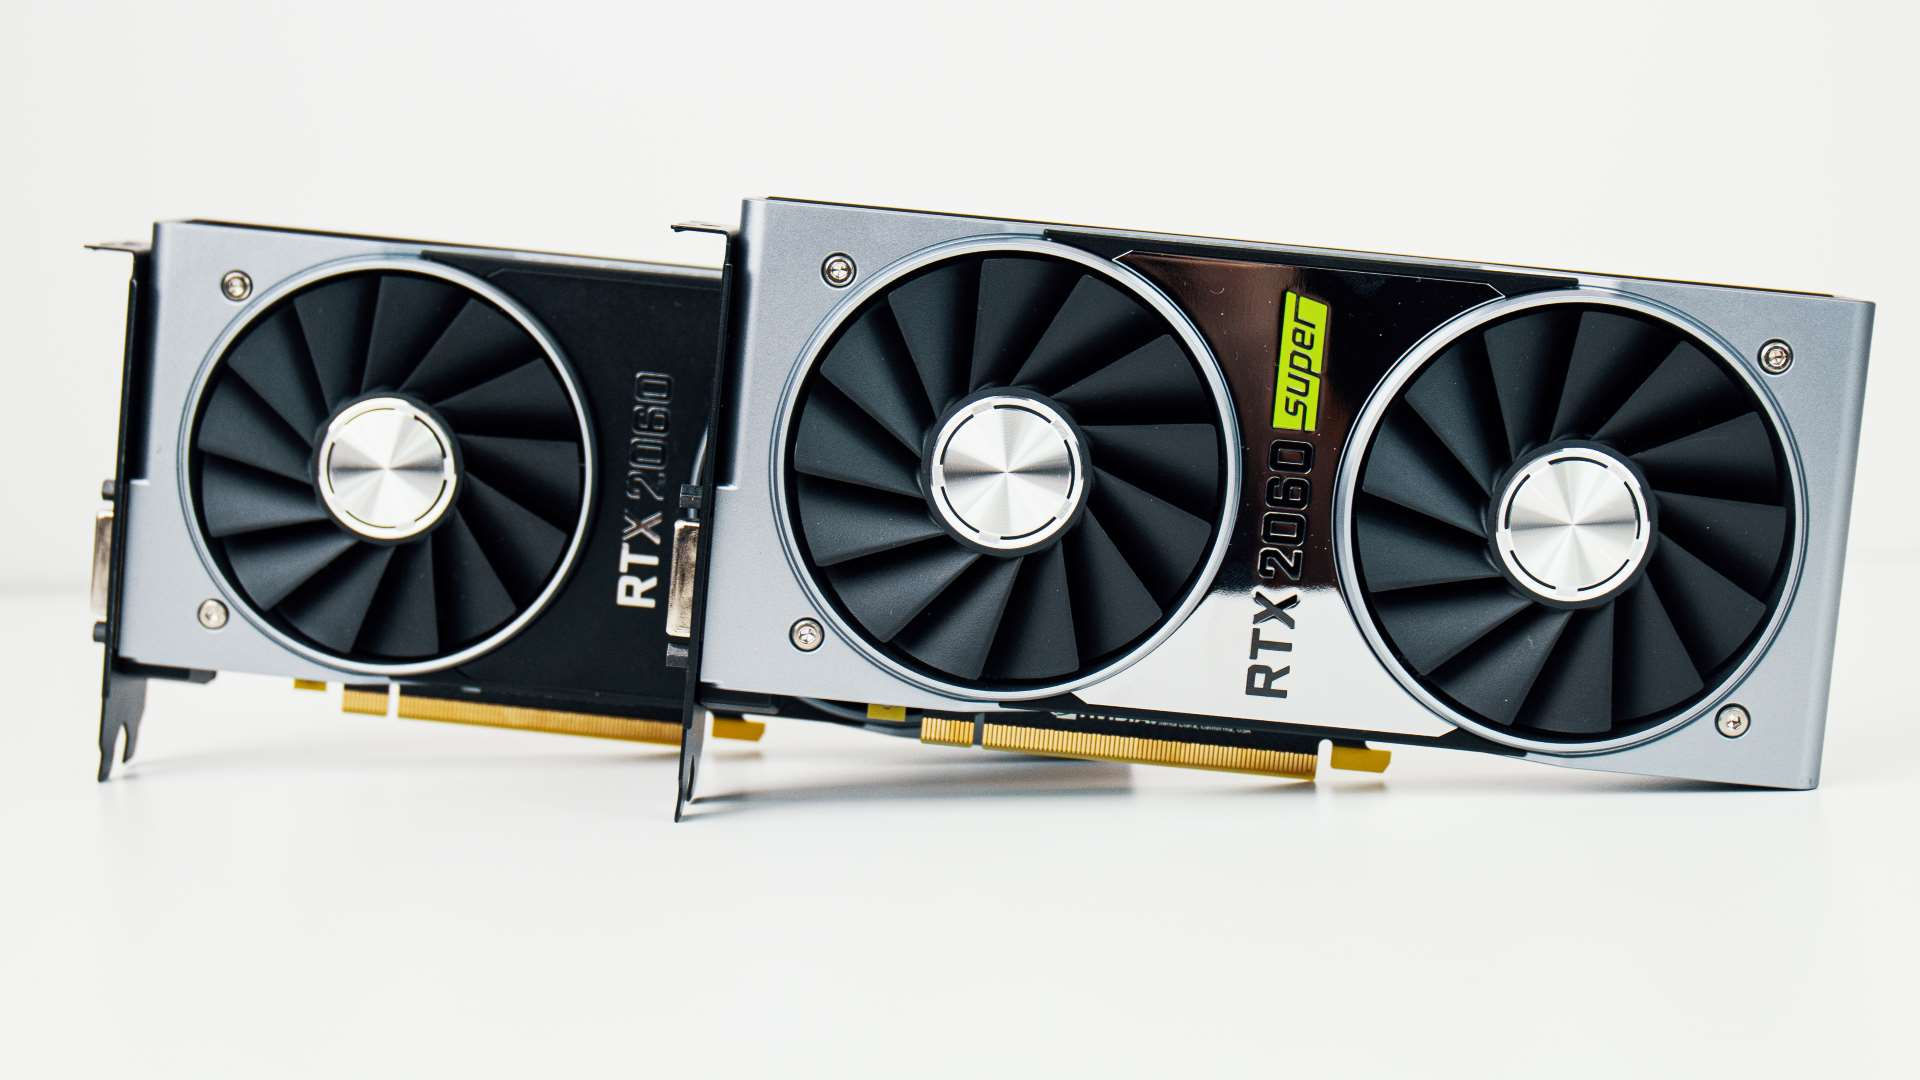 Nvidia RTX 2060 Super review: pinned down by AMD's RX 5700